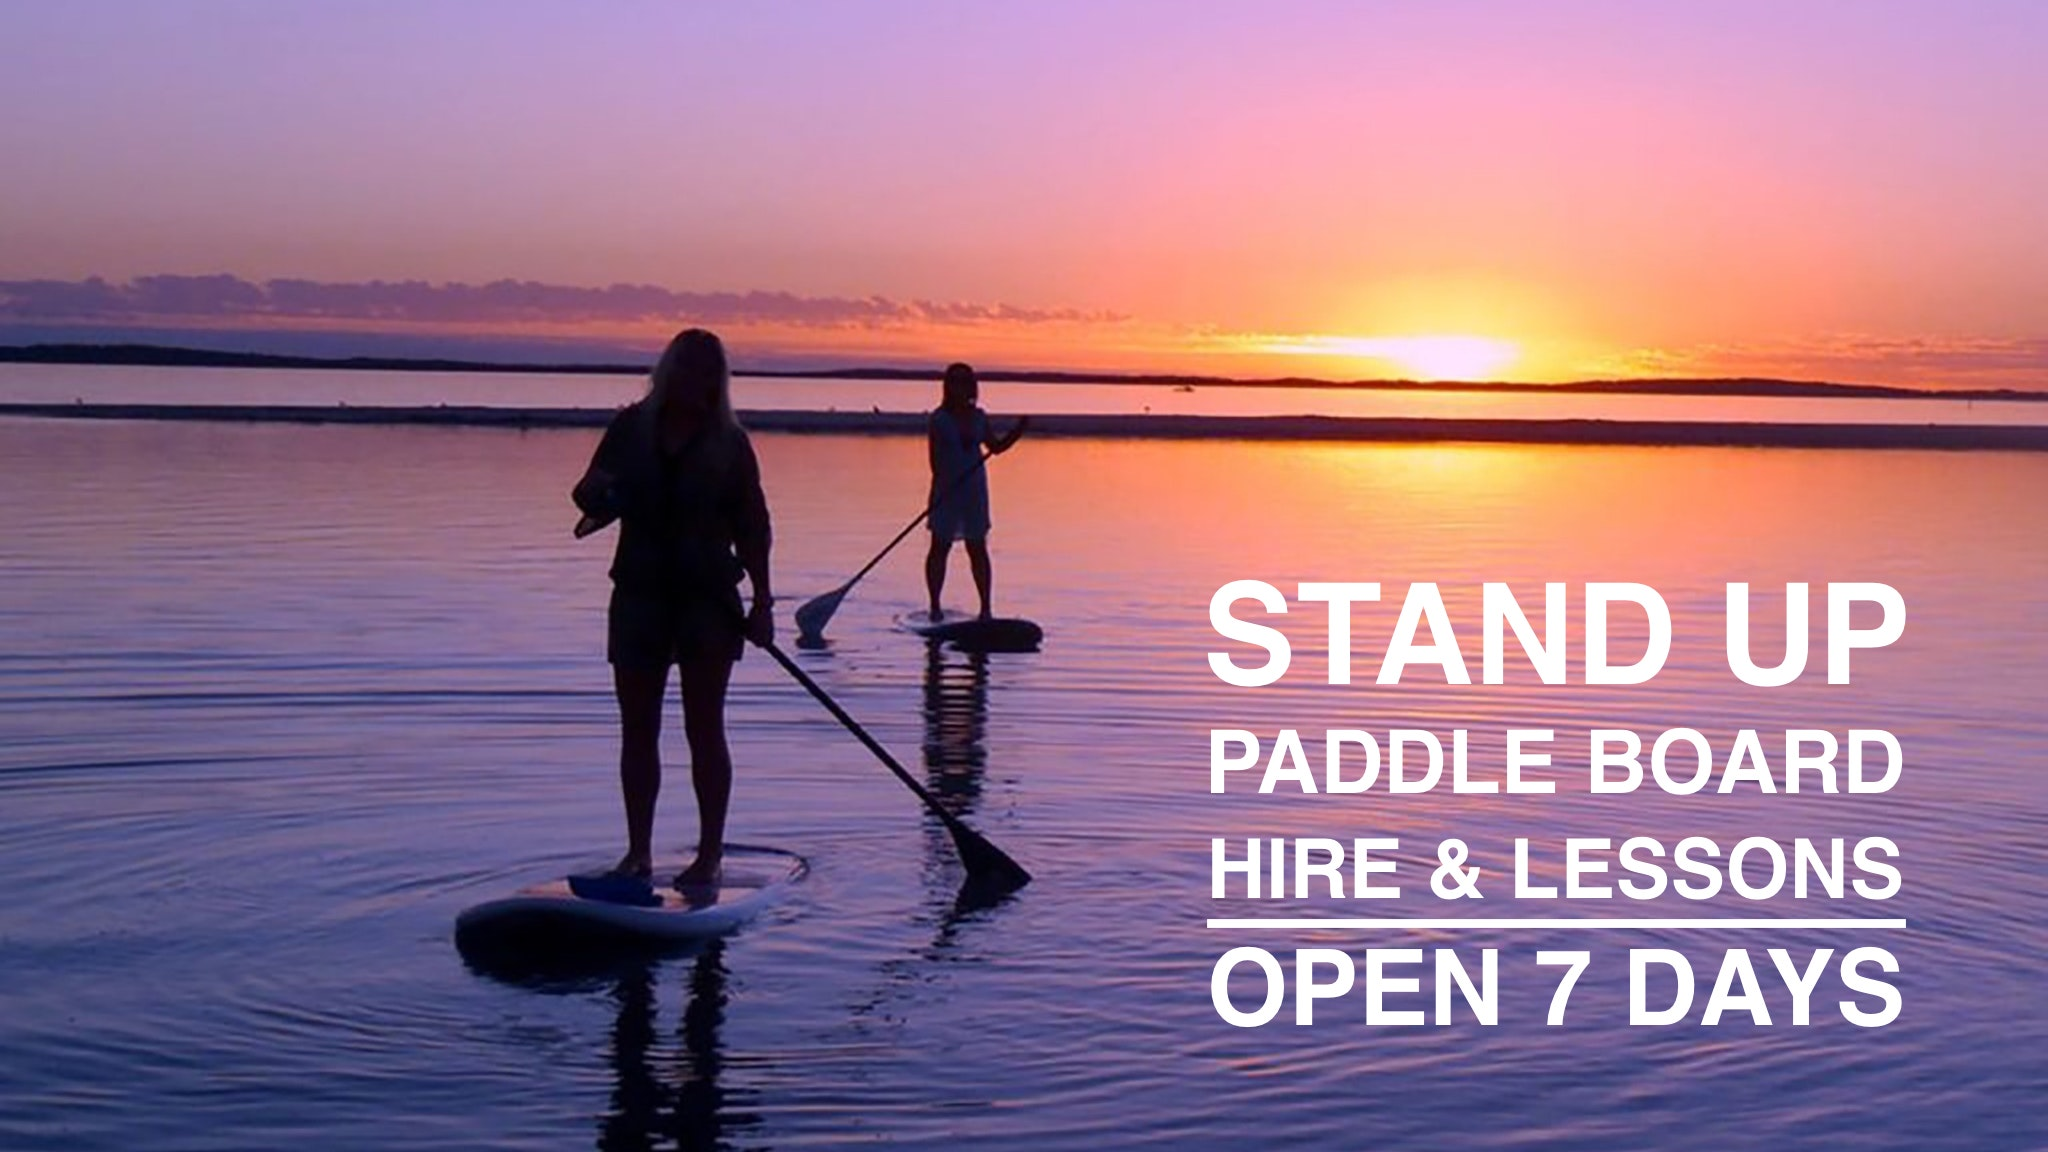 STAND UP PADDLE BOARDING ON ROCKINGHAM FORESHORE - BOARD HIRE HALF PRICE IN WINTER